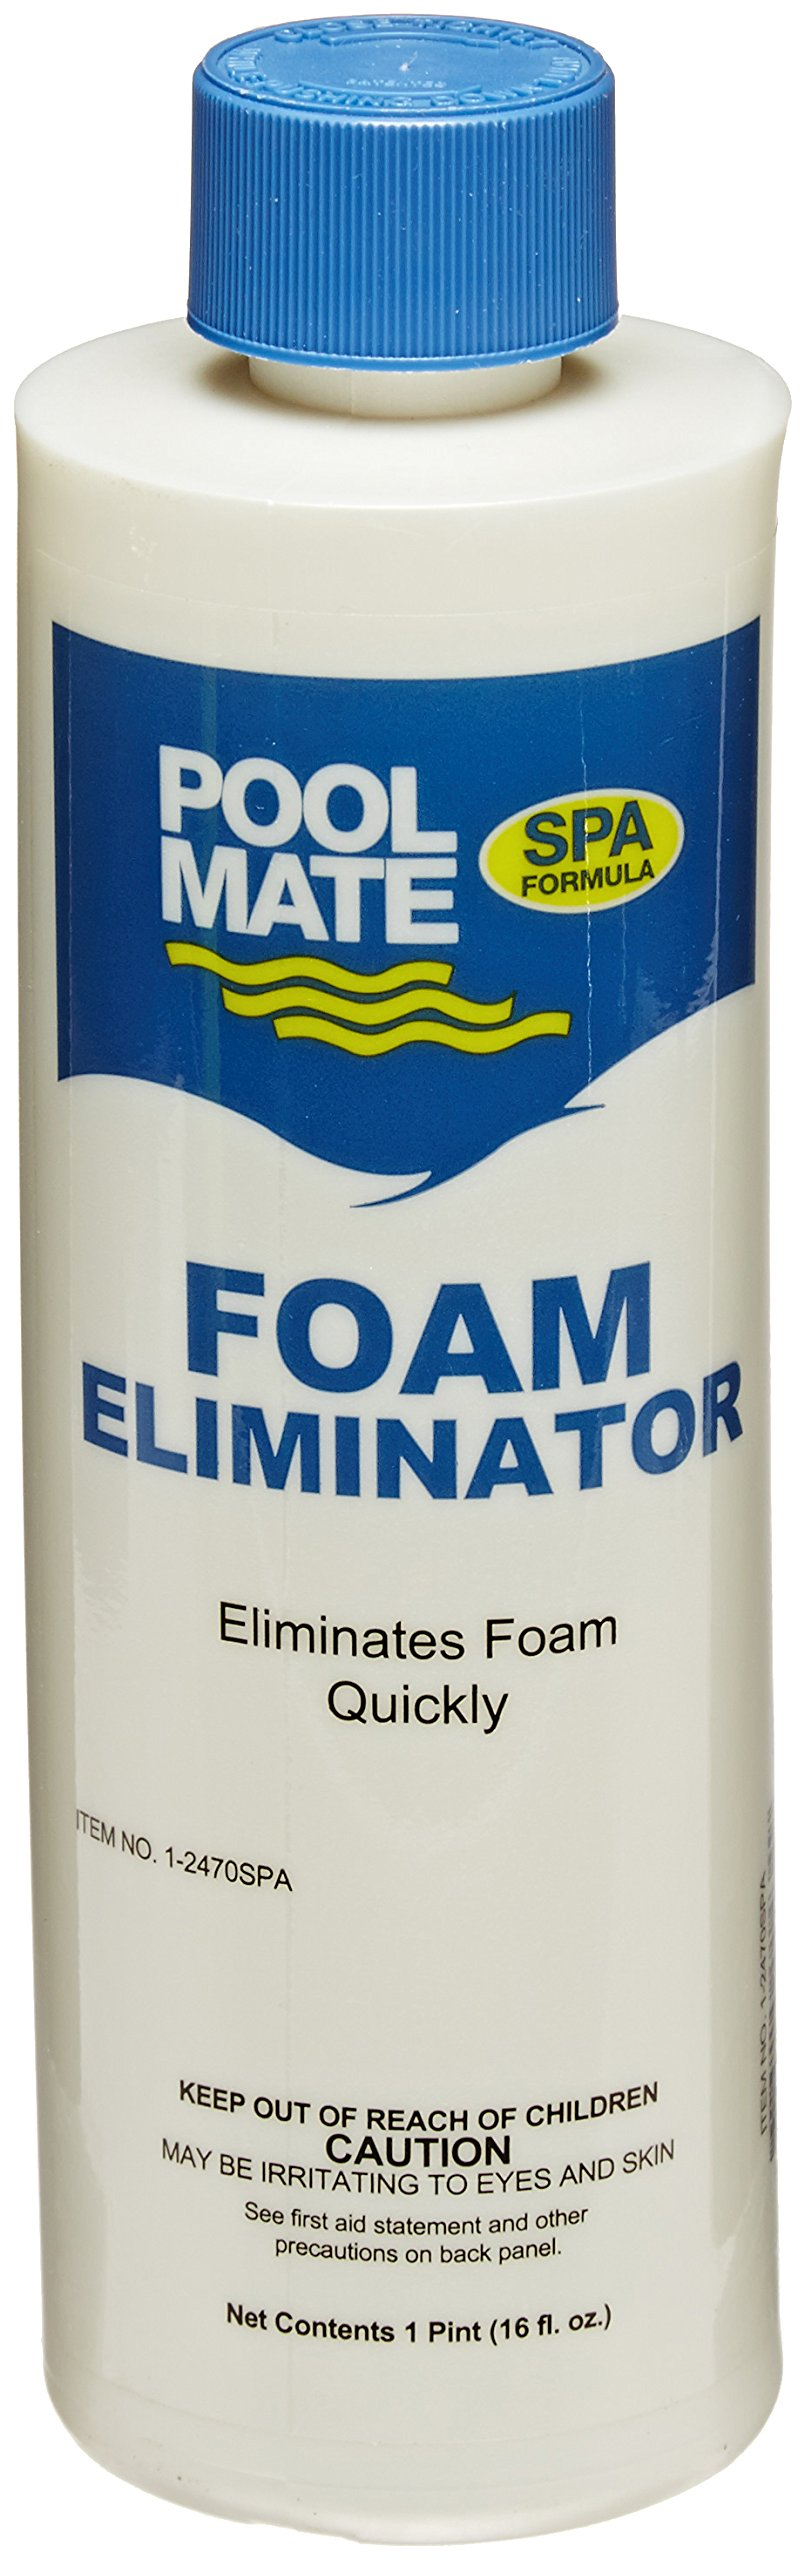 Pool Mate 1-2470SPA-02 Foam Away for Spas and Hot Tubs (2 Pack), 1 pint